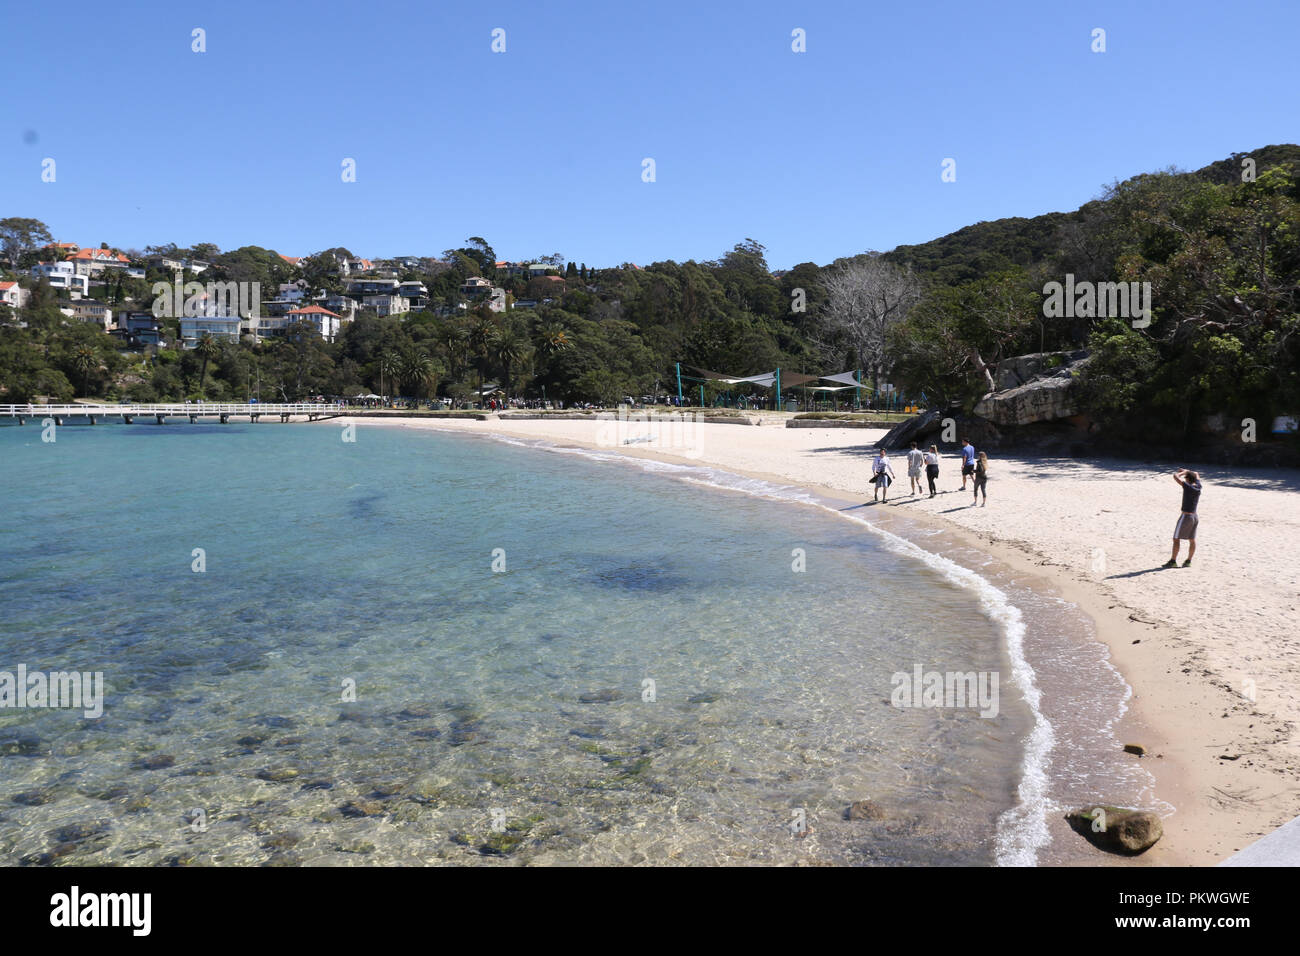 The beach at Clifton Gardens Reserve, Mosman on Sydney's lower north shore. - Stock Image